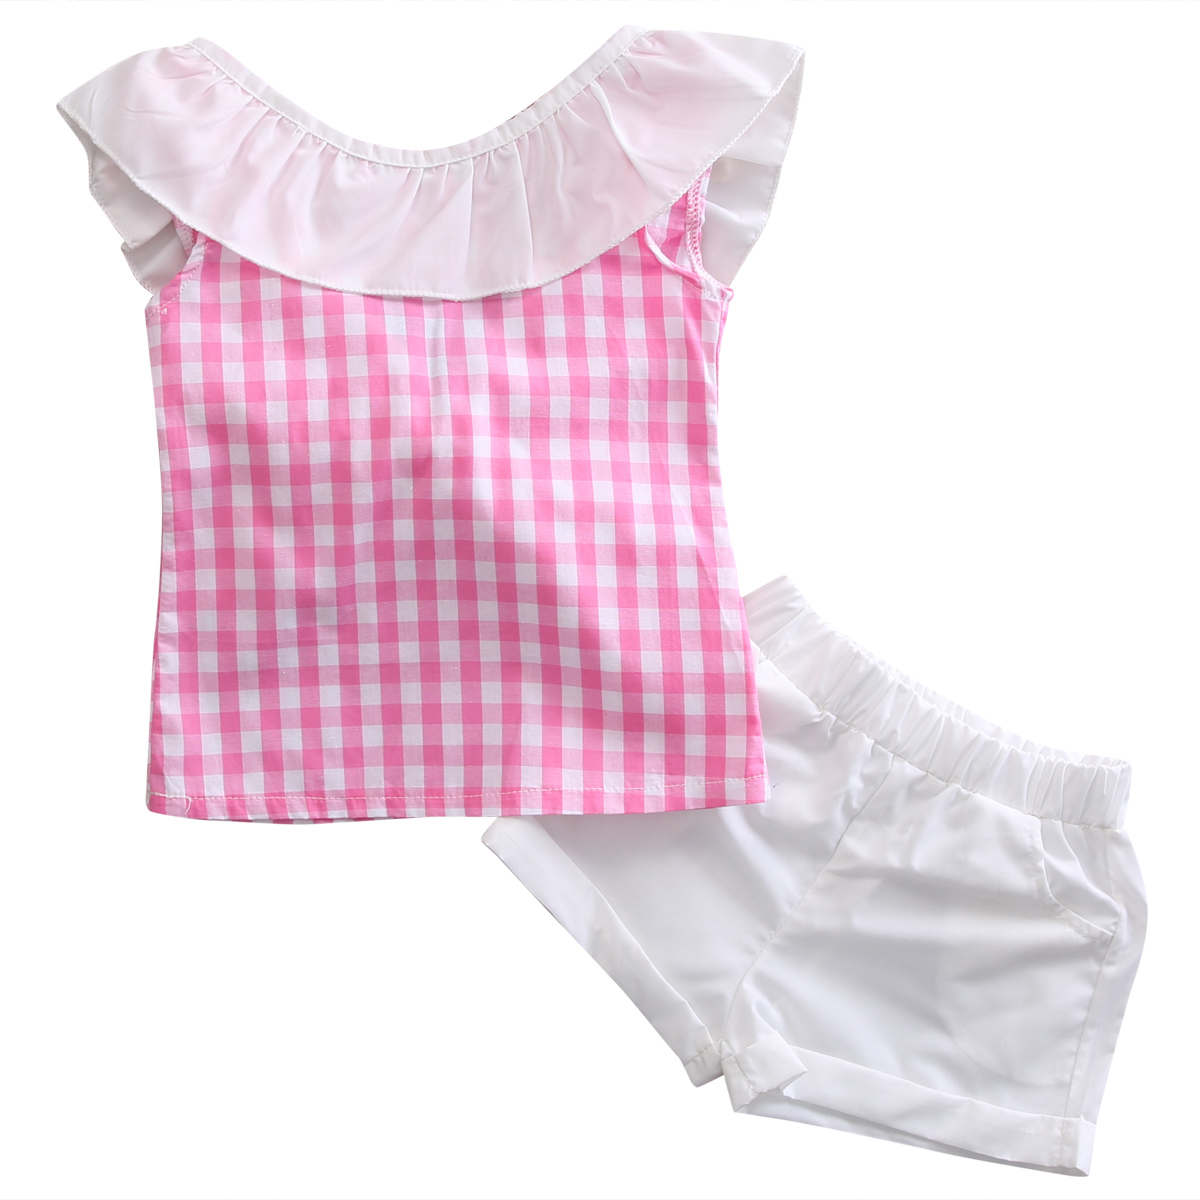 2PCS Toddler Kids Baby Girl Clothes 2017 Summer Sleeveless Plaid Shirt Ruffles Back Bow Tops +Shorts Pant Children Clothing Set flower sleeveless vest t shirt tops vest shorts pants outfit girl clothes set 2pcs baby children girls kids clothing bow knot